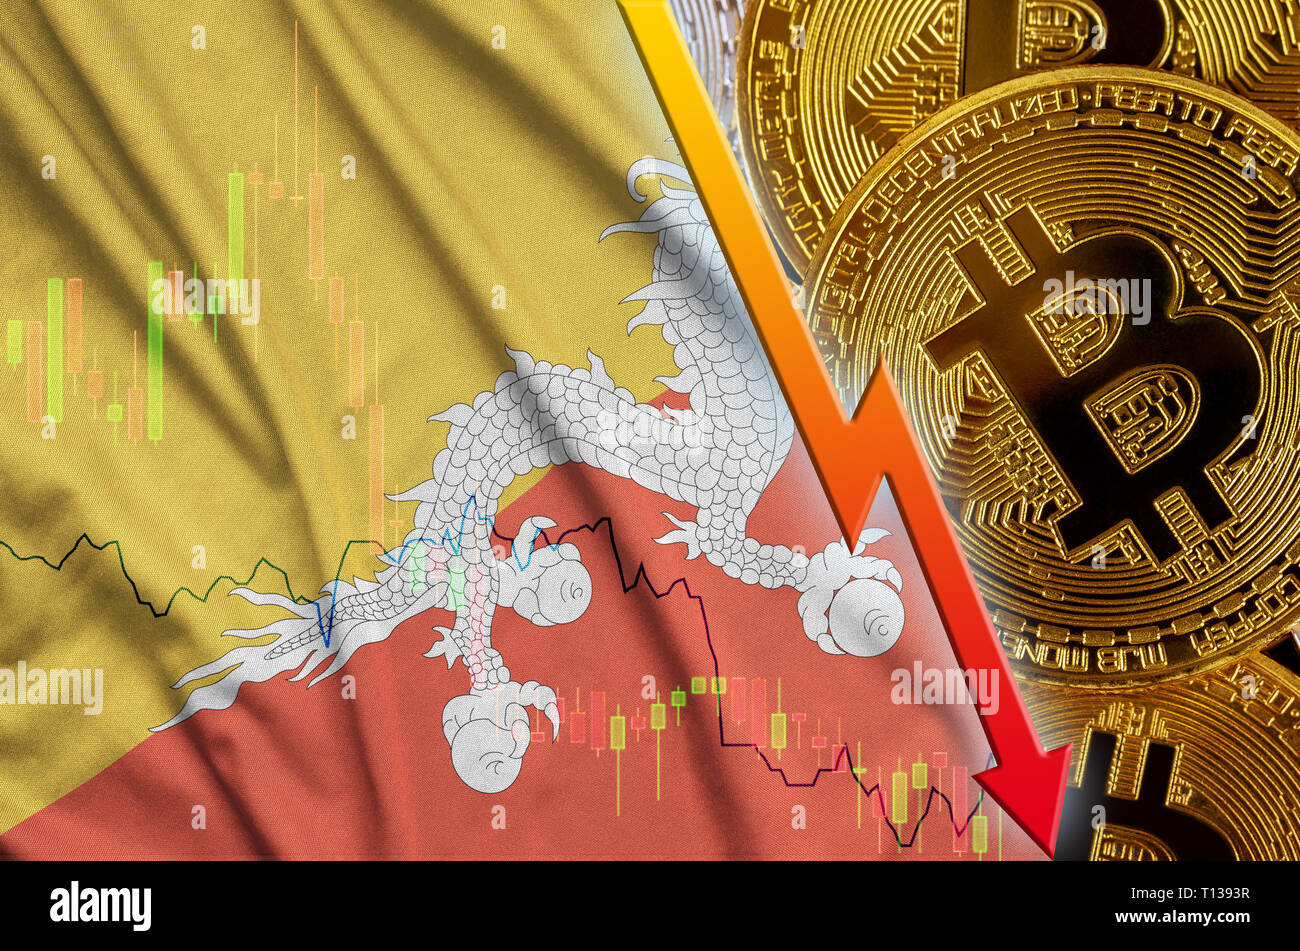 Cryptocurrency symbols of bhutan royal ascot betting directory